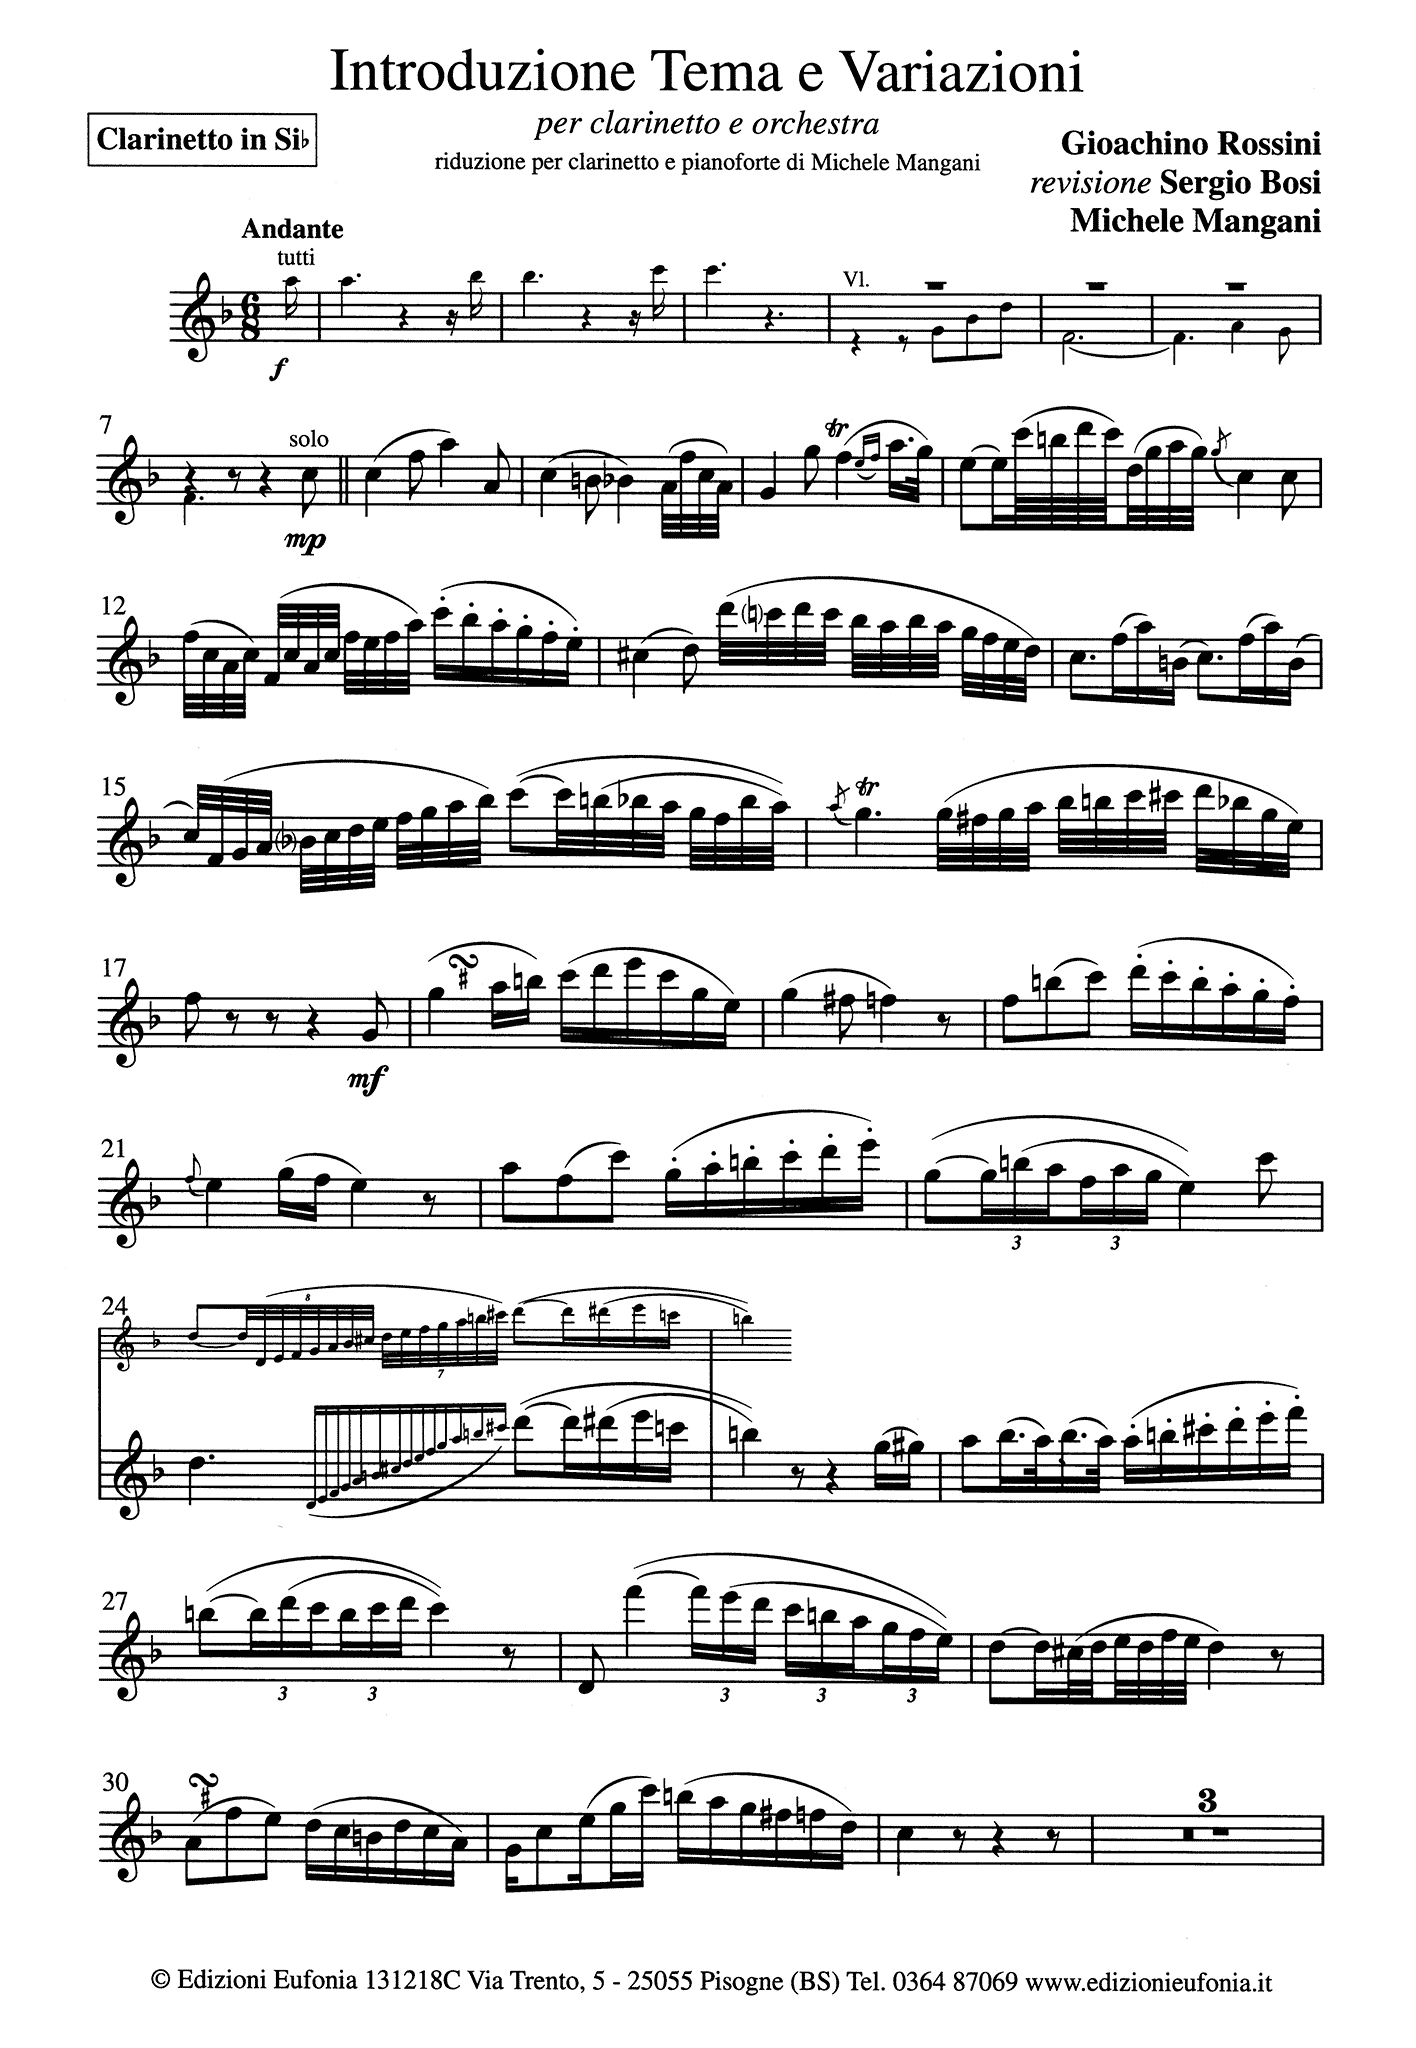 Introduction, Theme & Variations Clarinet part